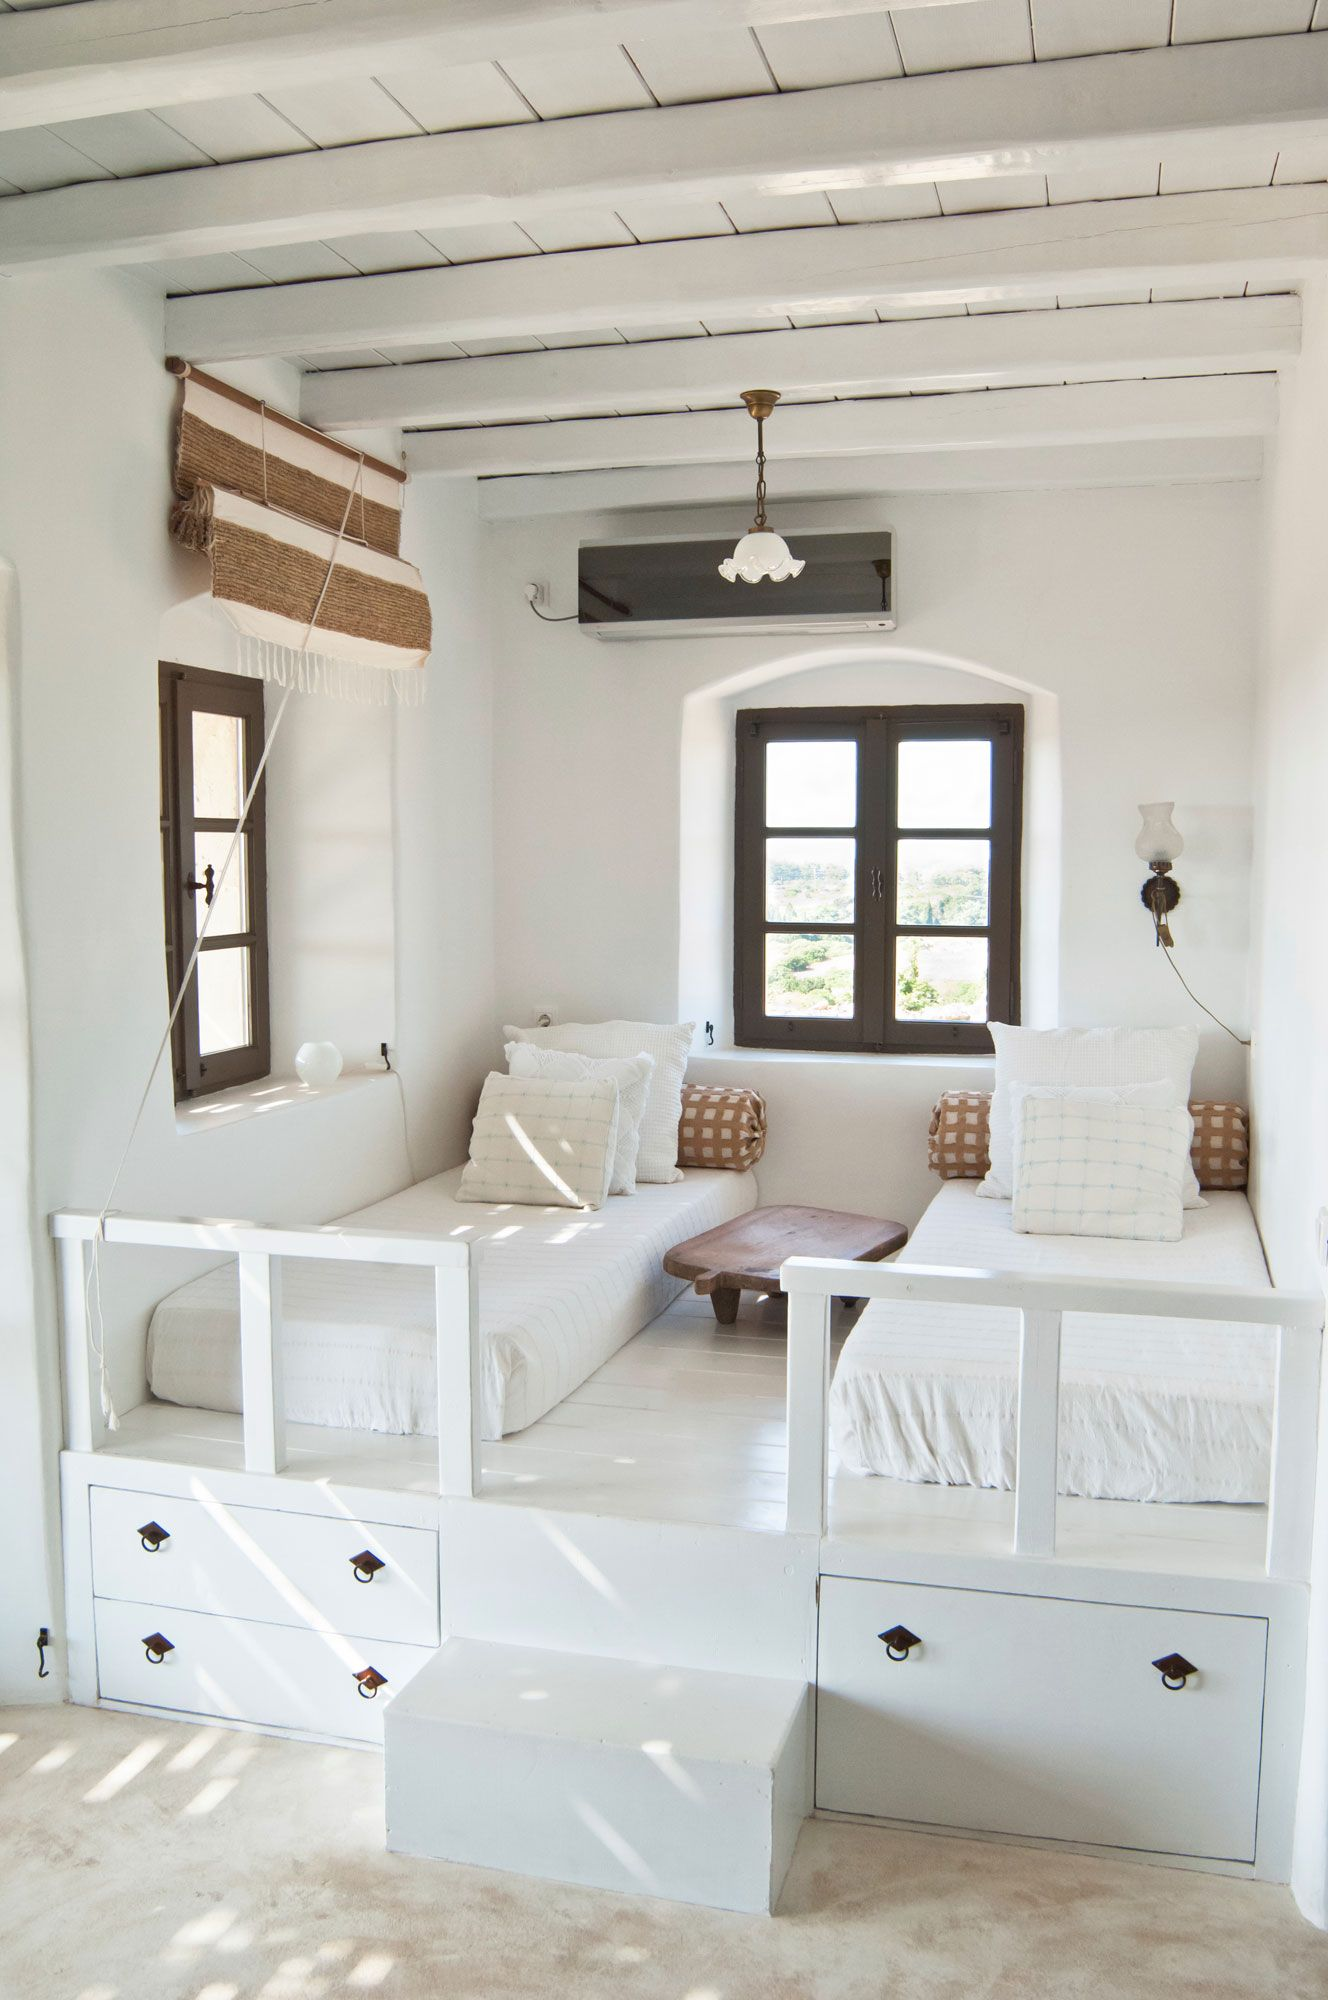 Ideas Para Decorar Una Casa En La Playa Hogarmania - Ideas-para-amueblar-una-casa